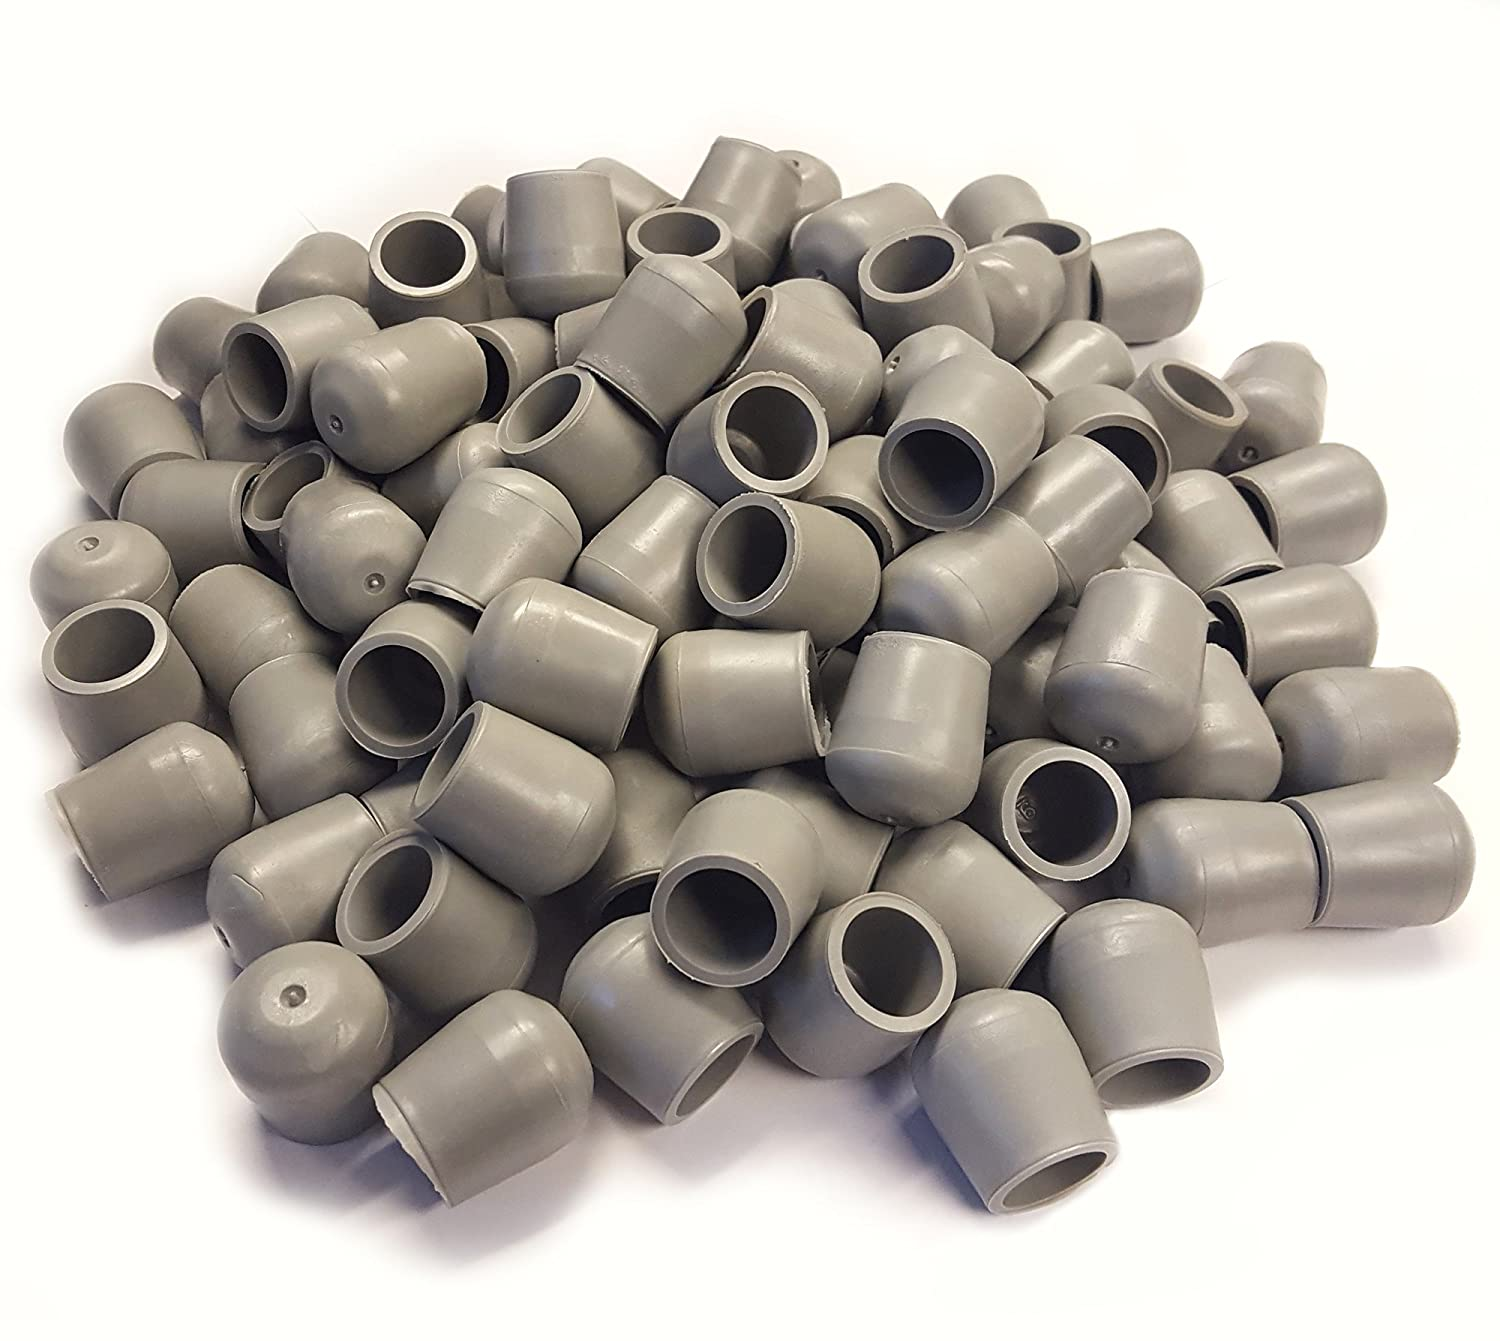 100 pk Replacement Foot Cap Glides for Rental Style Plastic